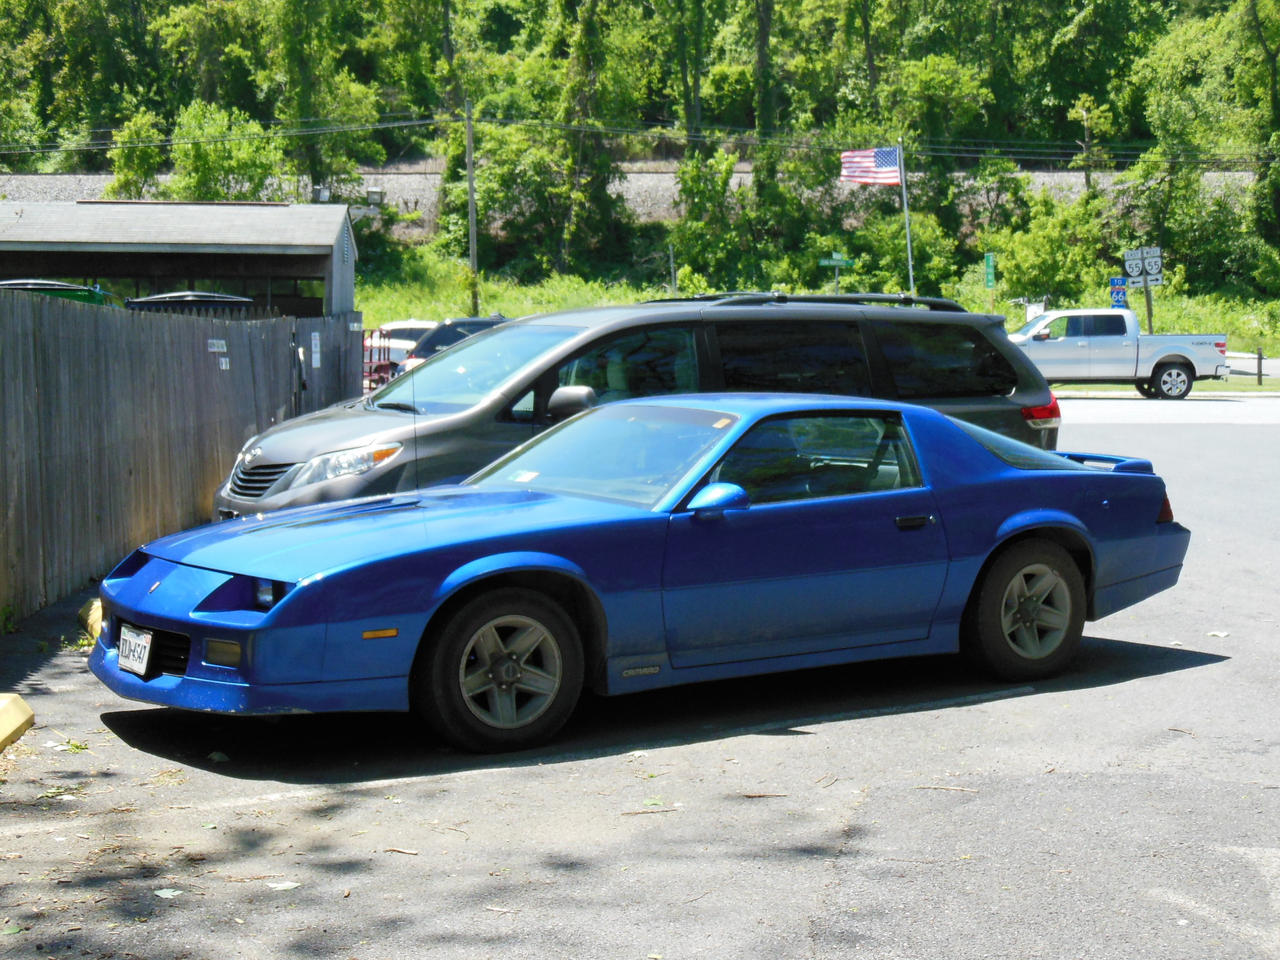 blue third generation chevrolet camaro by rlkitterman on. Cars Review. Best American Auto & Cars Review